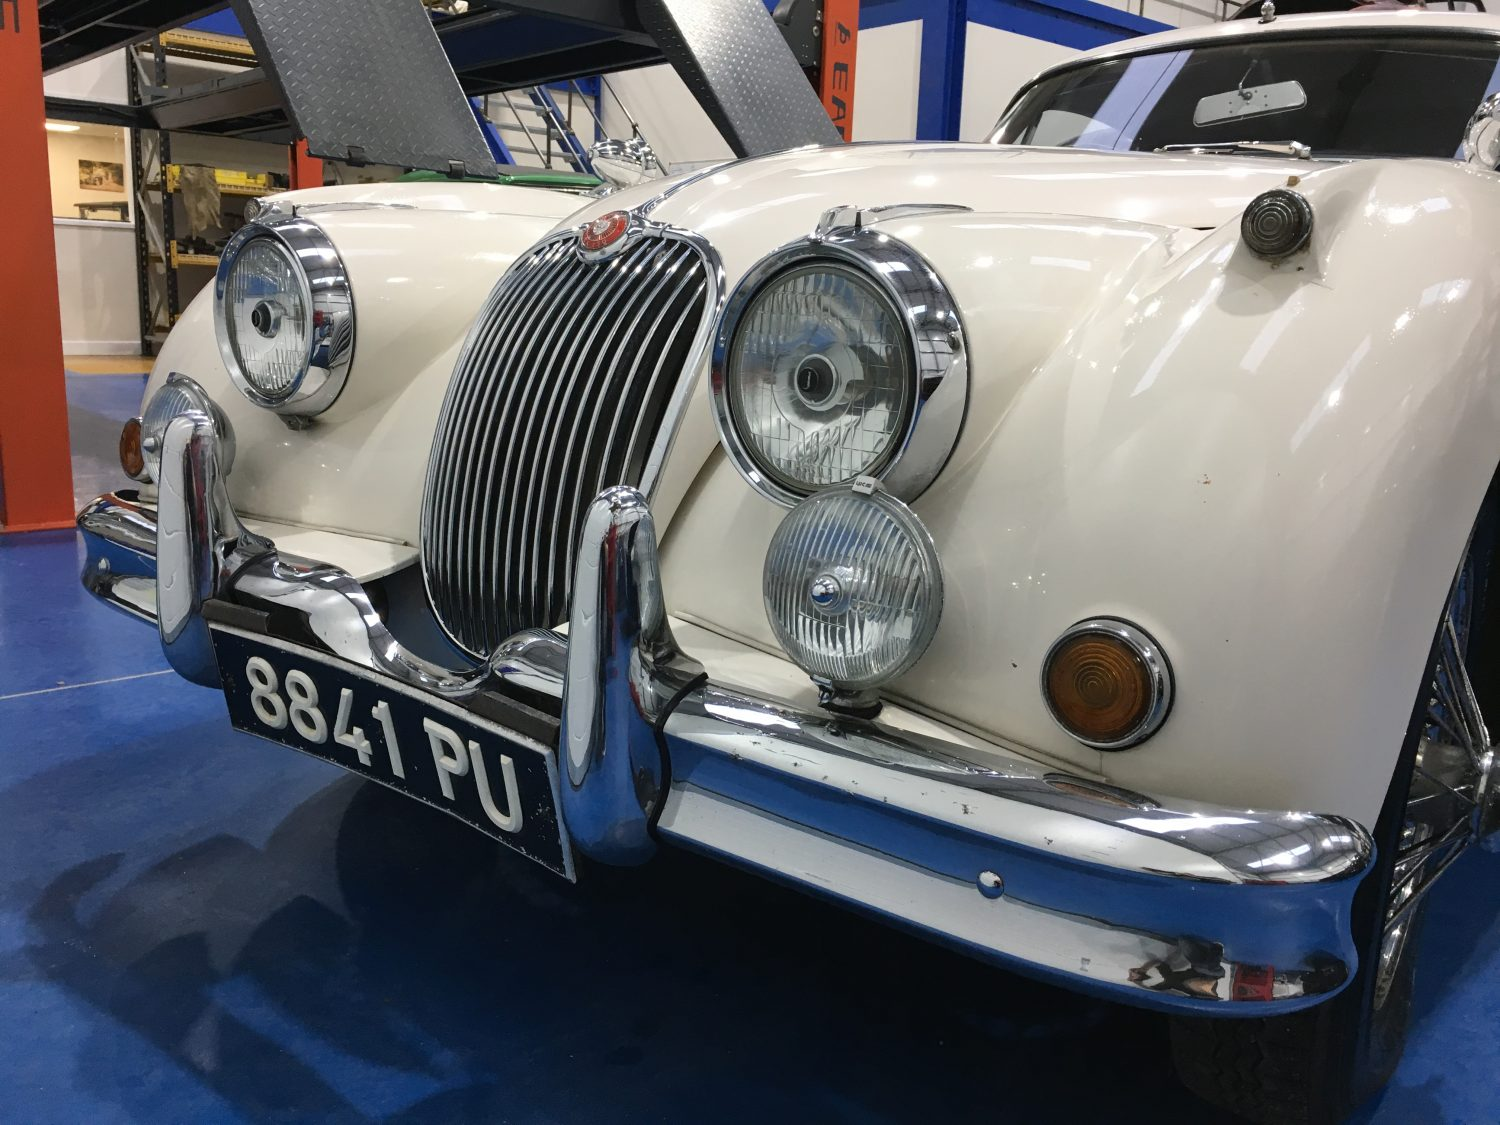 Detailing our 1961 Jaguar XK150 ready for re-sale